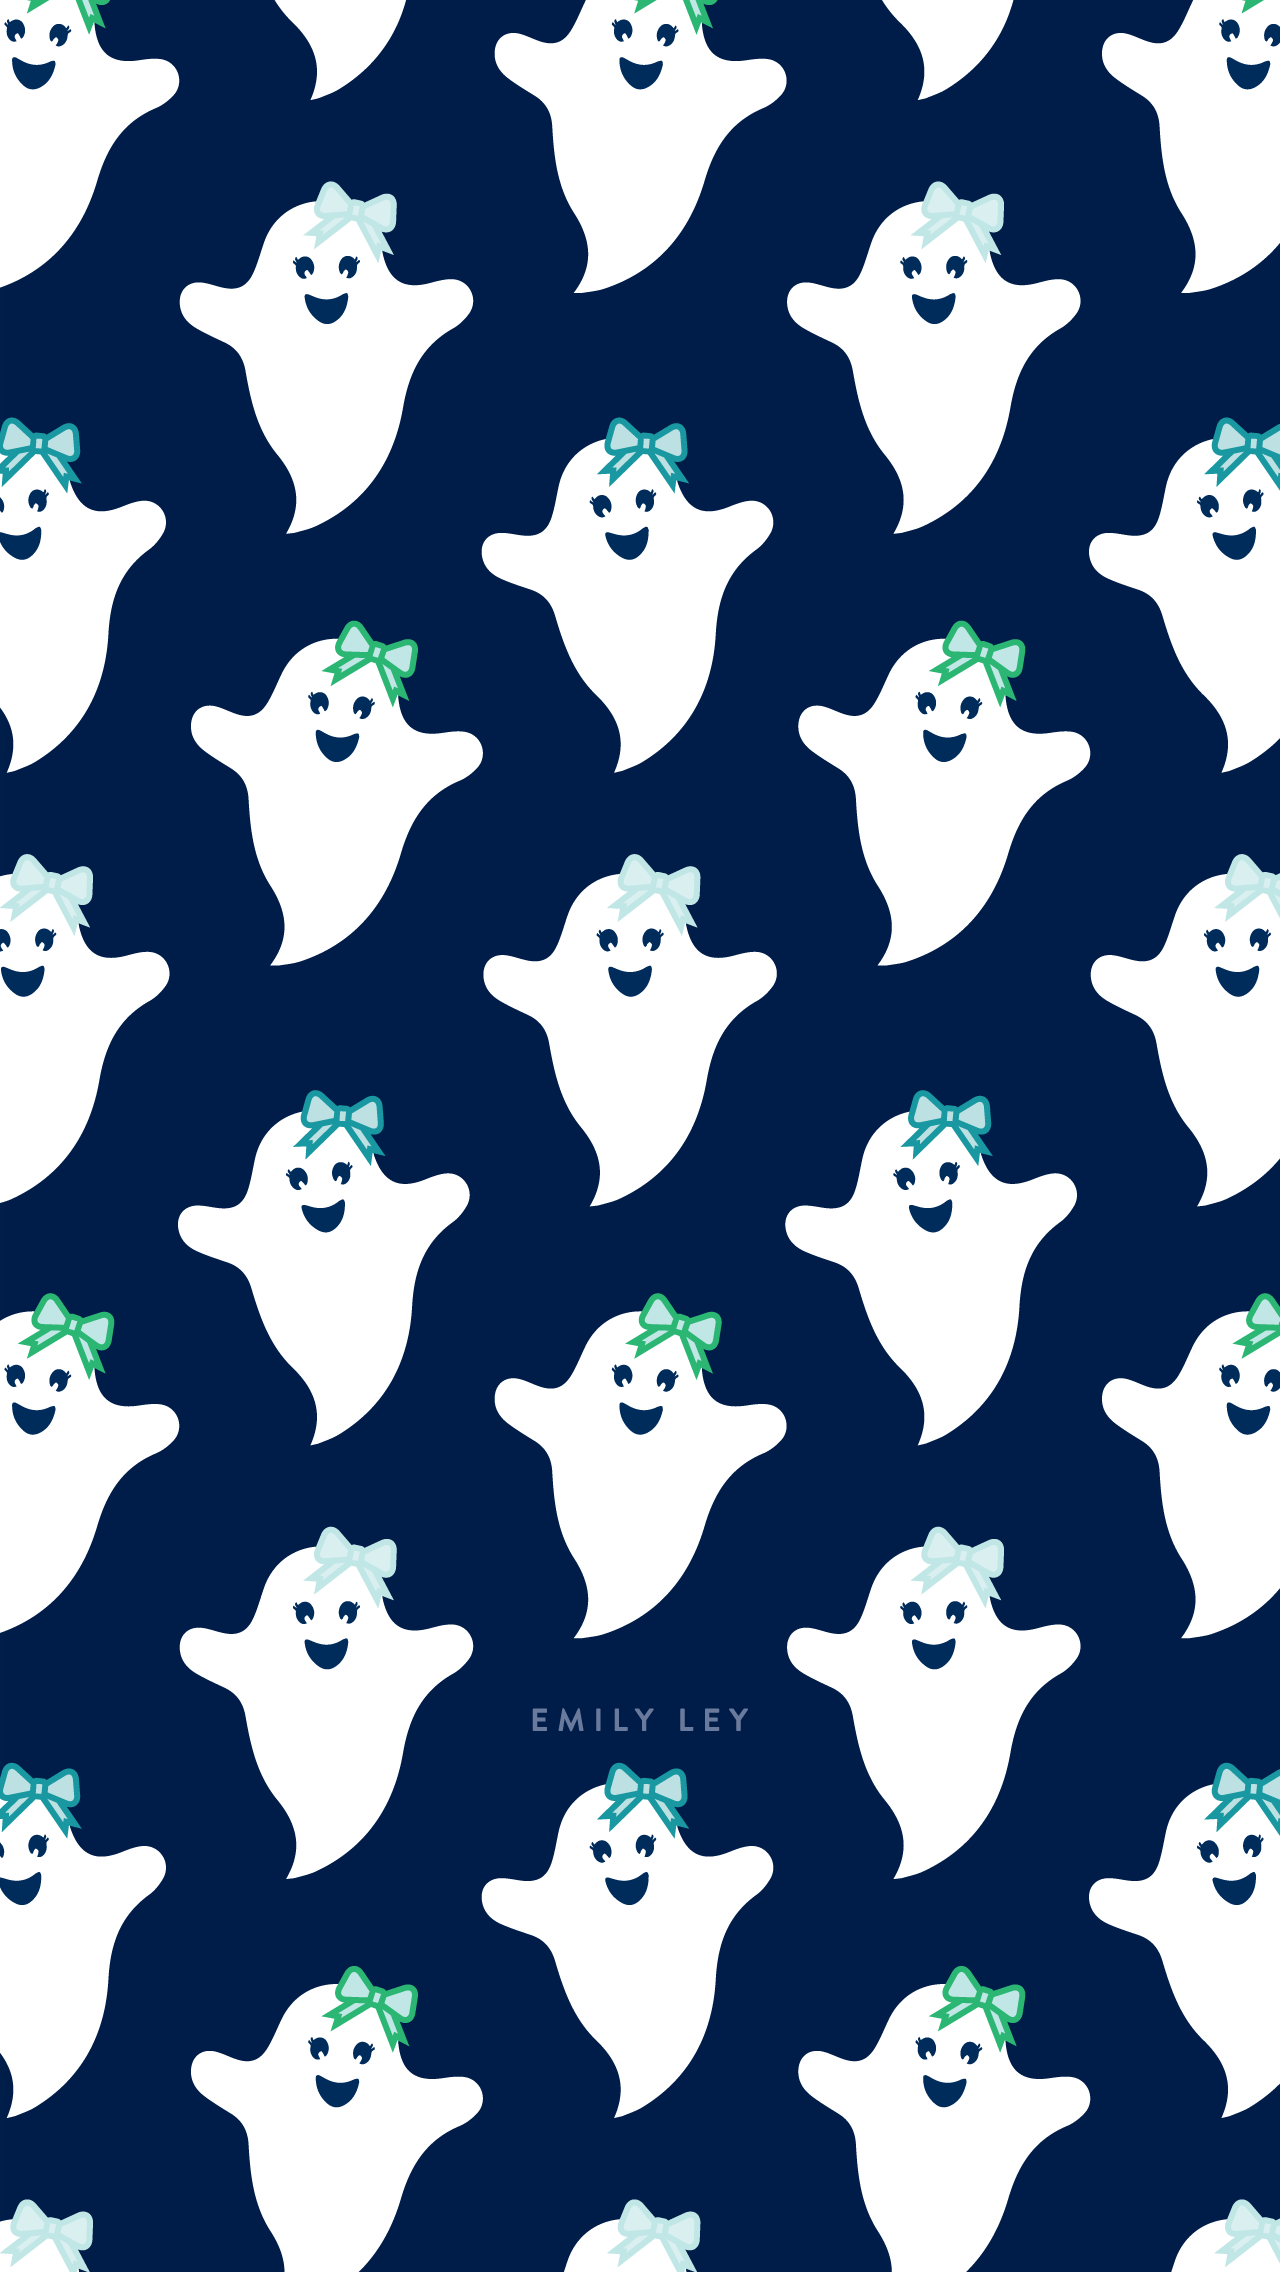 Free iPhone Wallpaper for Halloween. Ghosts Wallpaper